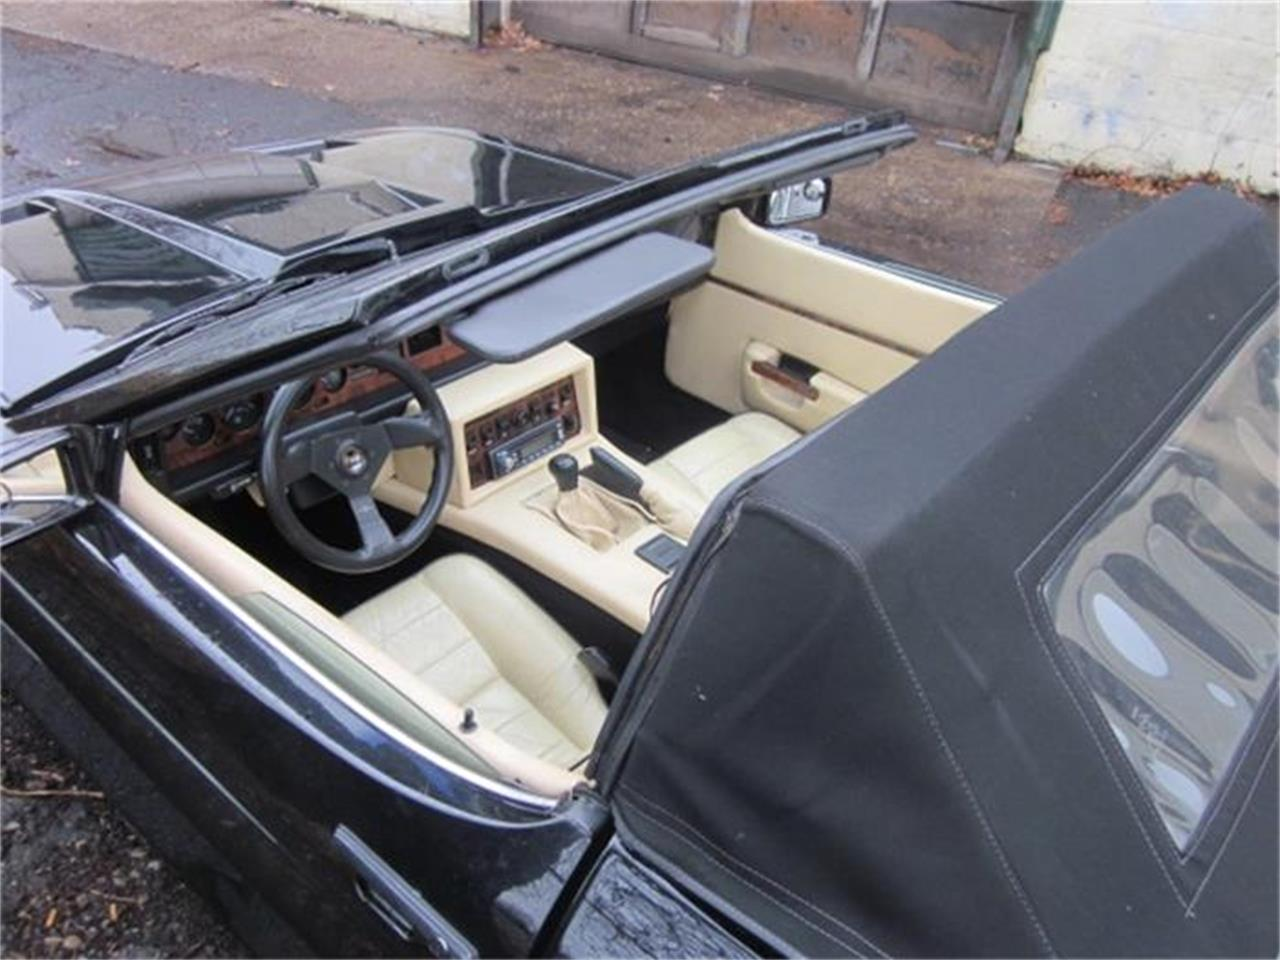 1986 TVR 280i for sale in Stratford, CT – photo 11